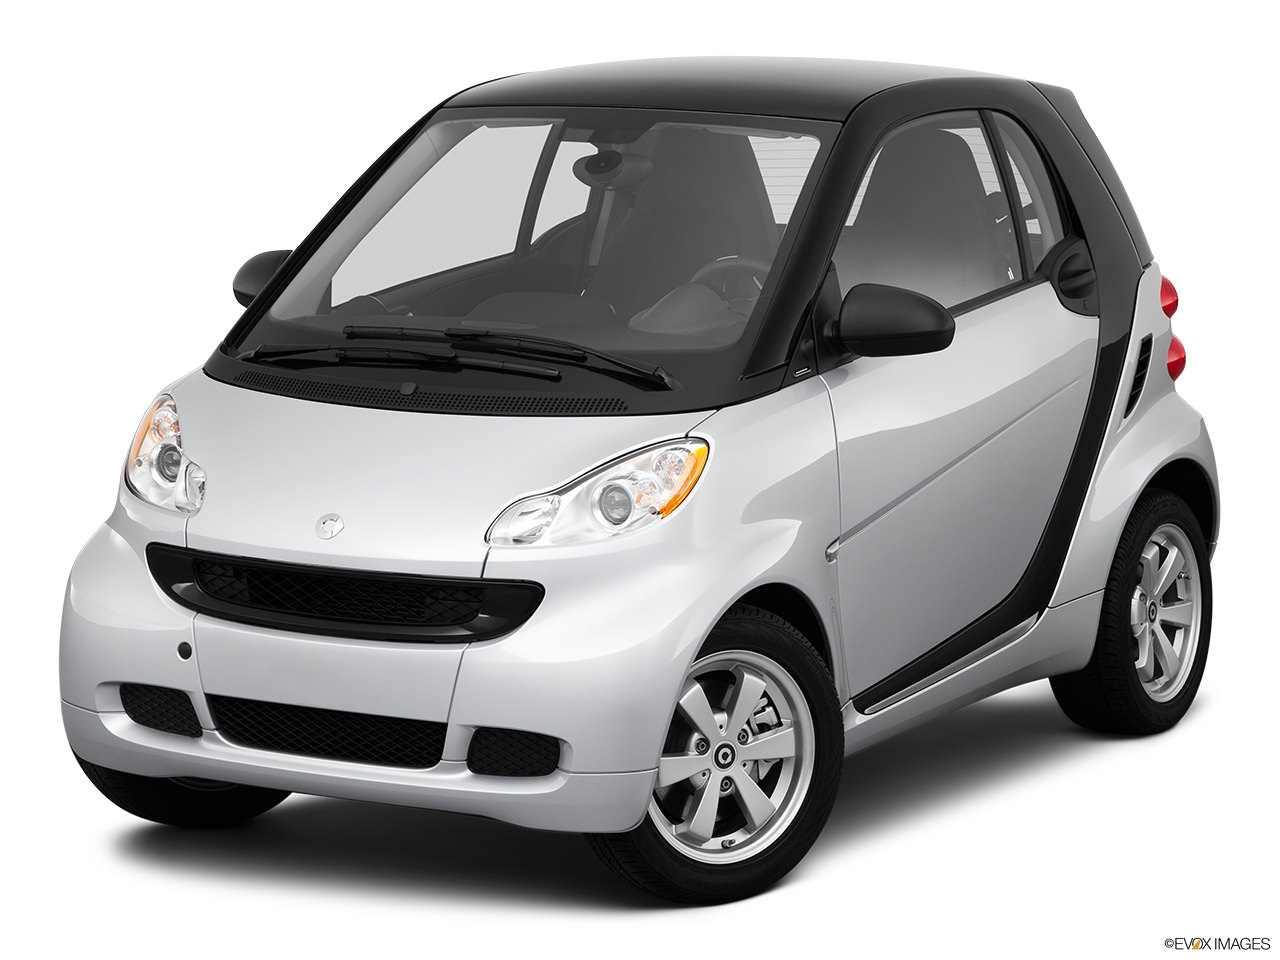 a buyer s guide to the 2012 smart fortwo ev yourmechanic advice rh yourmechanic com used smart fortwo buying guide smart fortwo buying guide